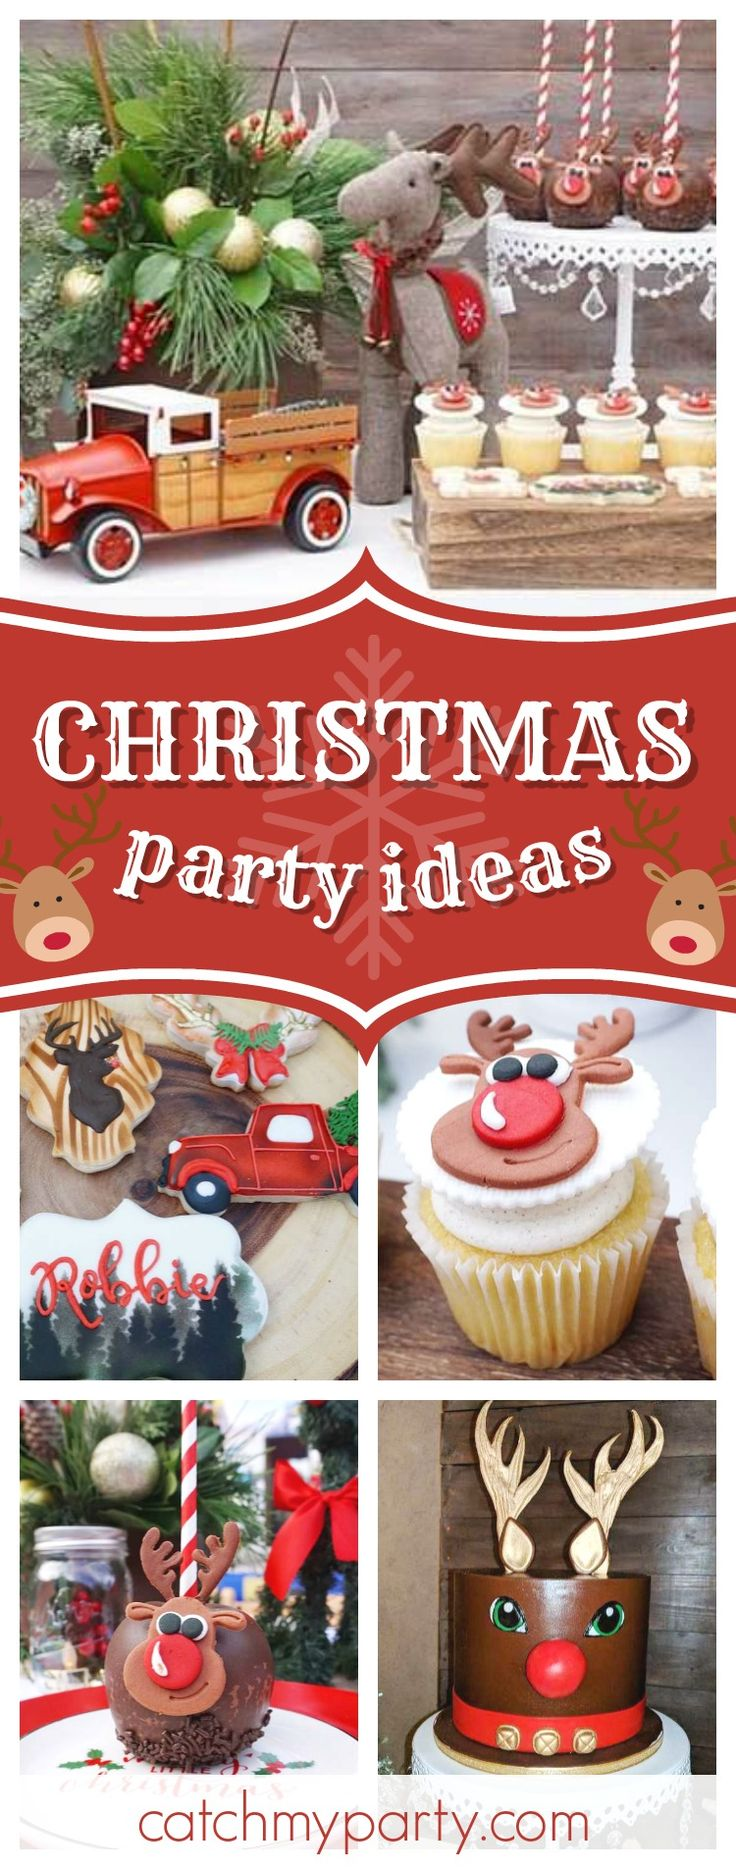 Take a look at this awesome Rudolph the Red-Nosed Reindeer Christmas Party! The cake pops are so cute!! See more party ideas and share yours at CatchMyParty.com #christmas #holiday #reindeer #rudolph